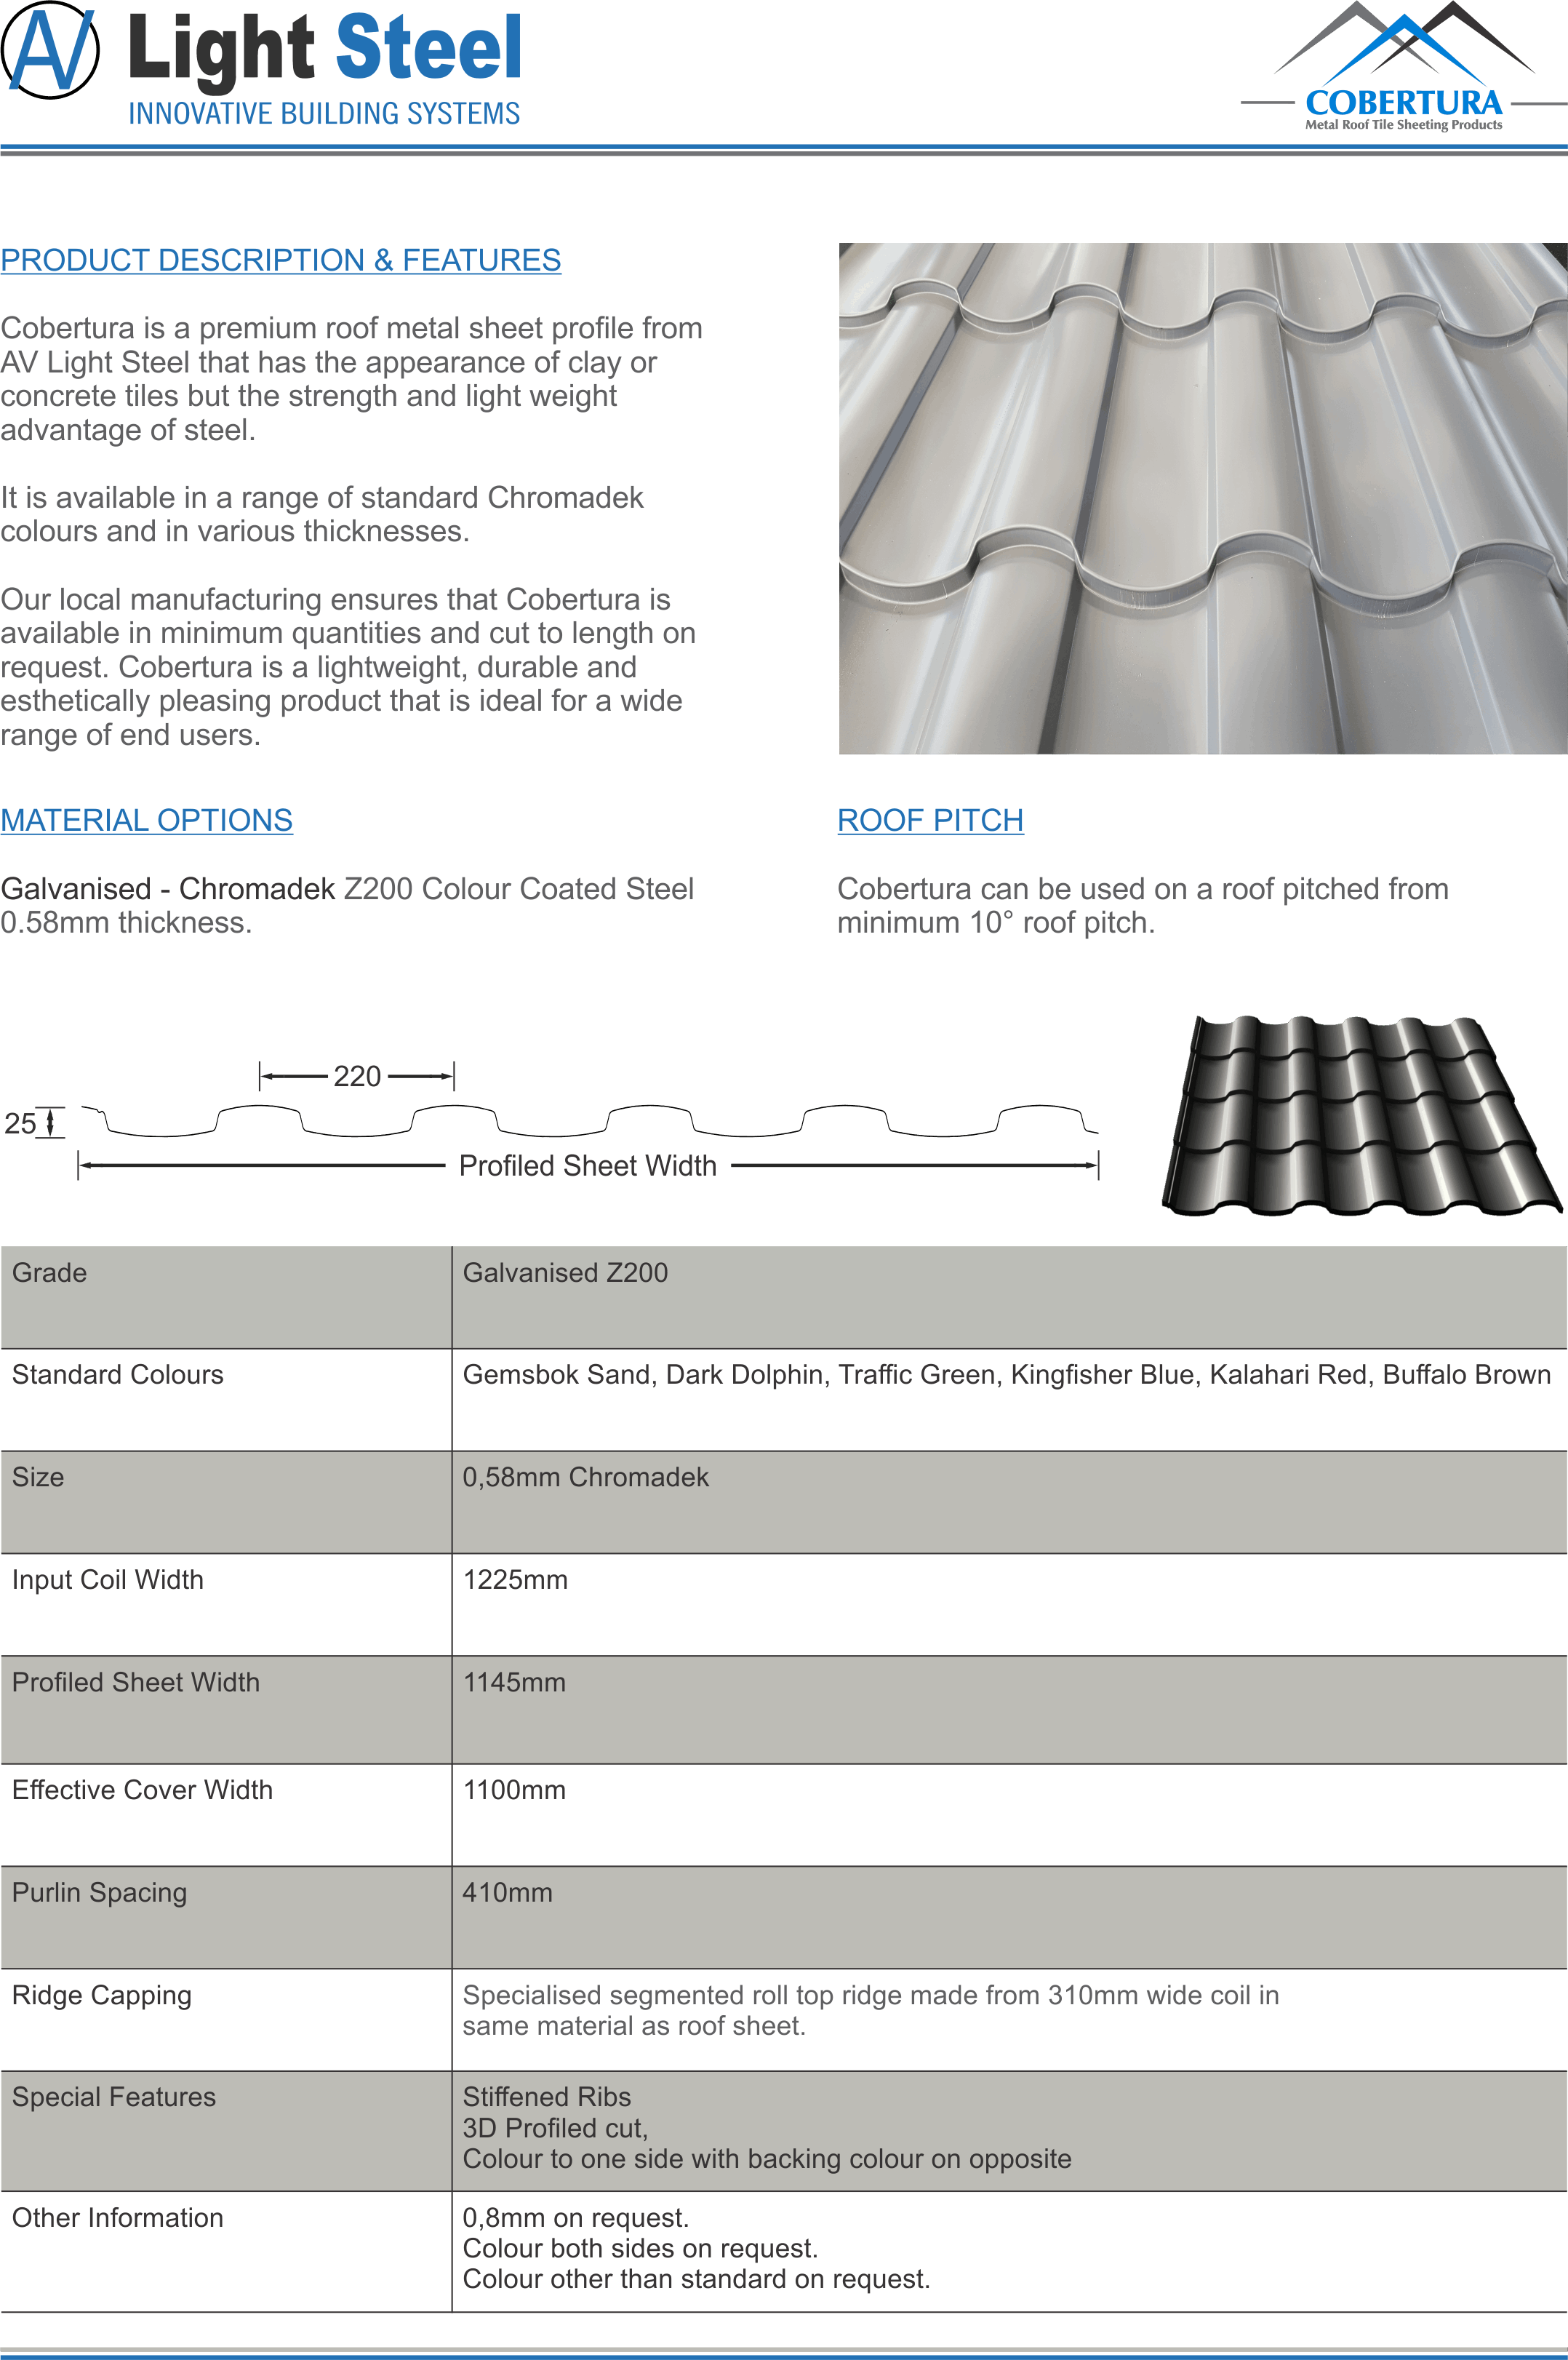 av light steel cobertura tile profile pressed metal roof Chromadek sheeting